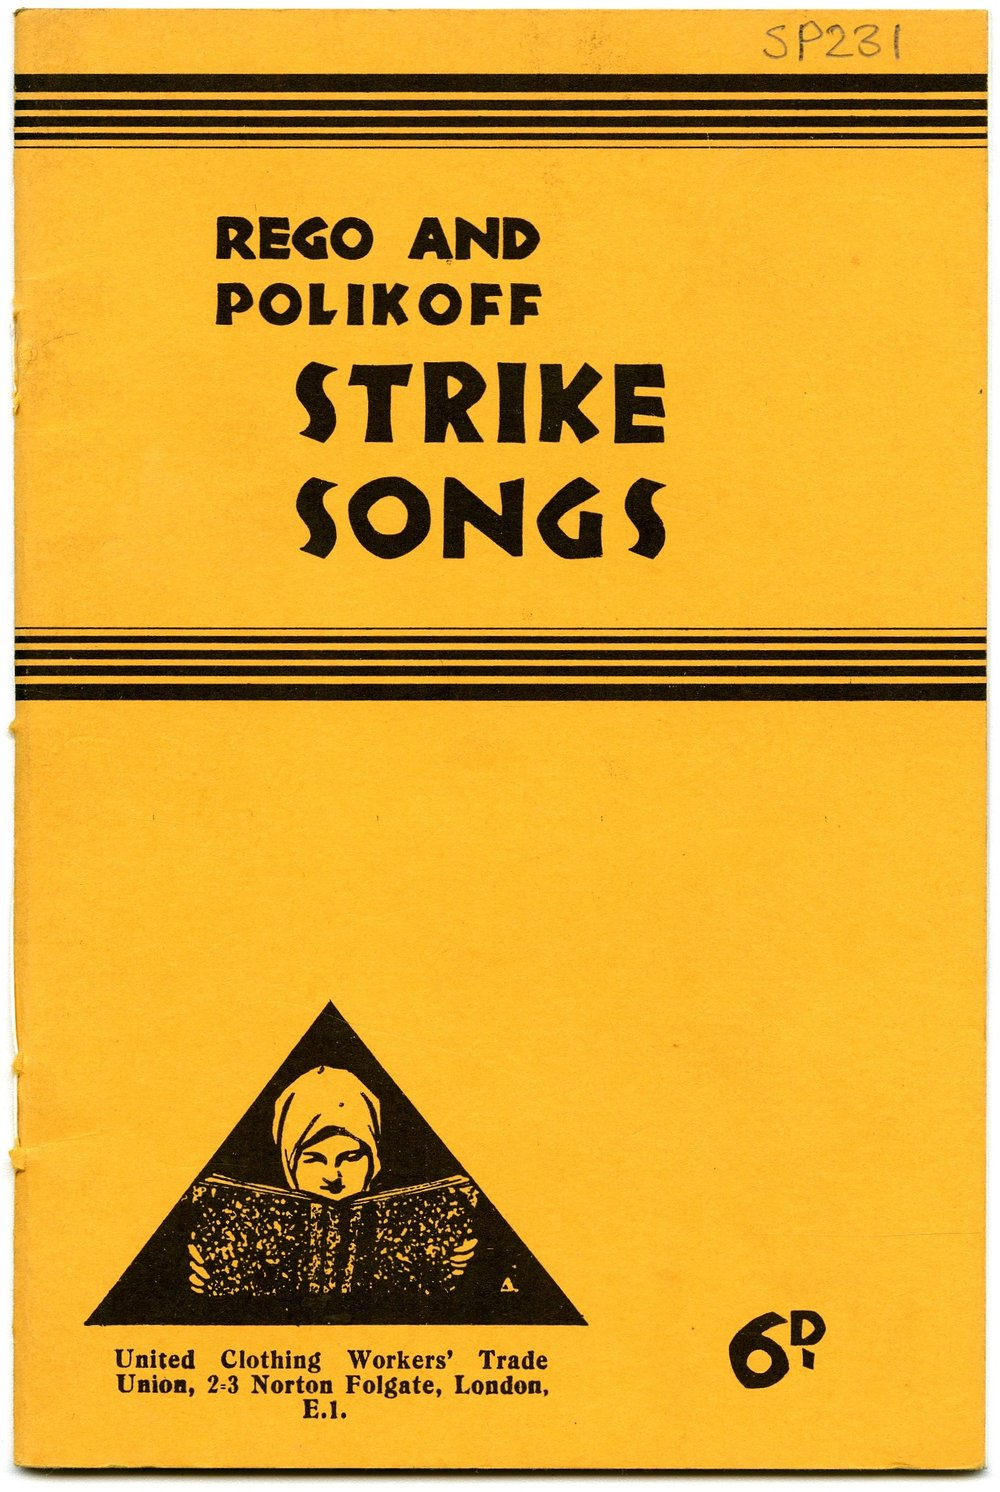 Cover of the replica Rego Strikers songbook, courtesy of the  Bishopsgate Institute